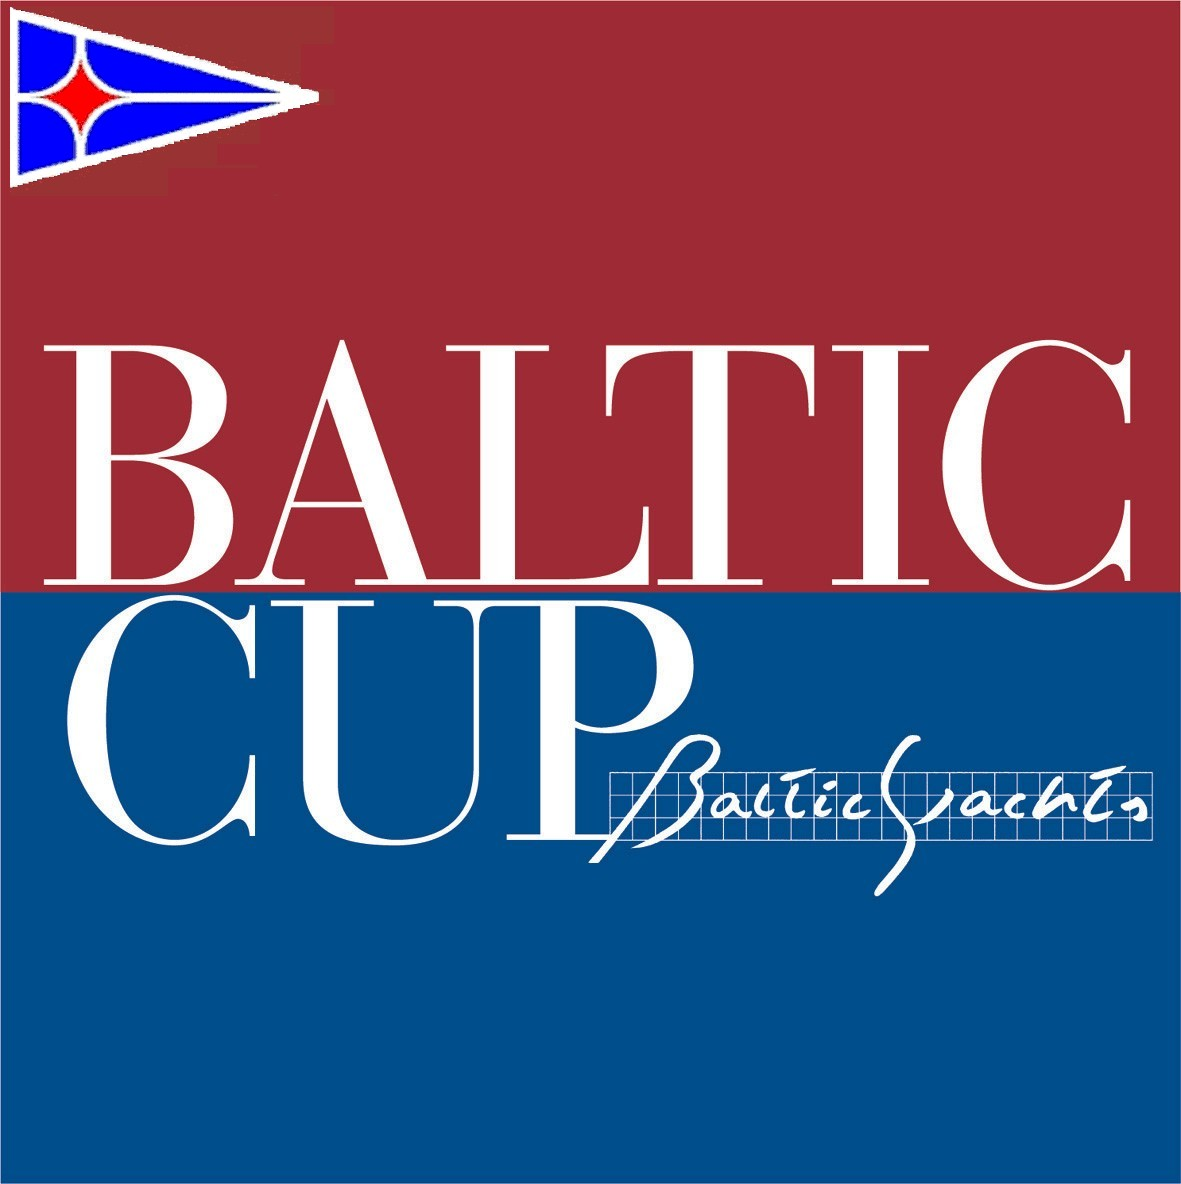 Yacht Club Costa Smeralda - Le Regate - Baltic Cup